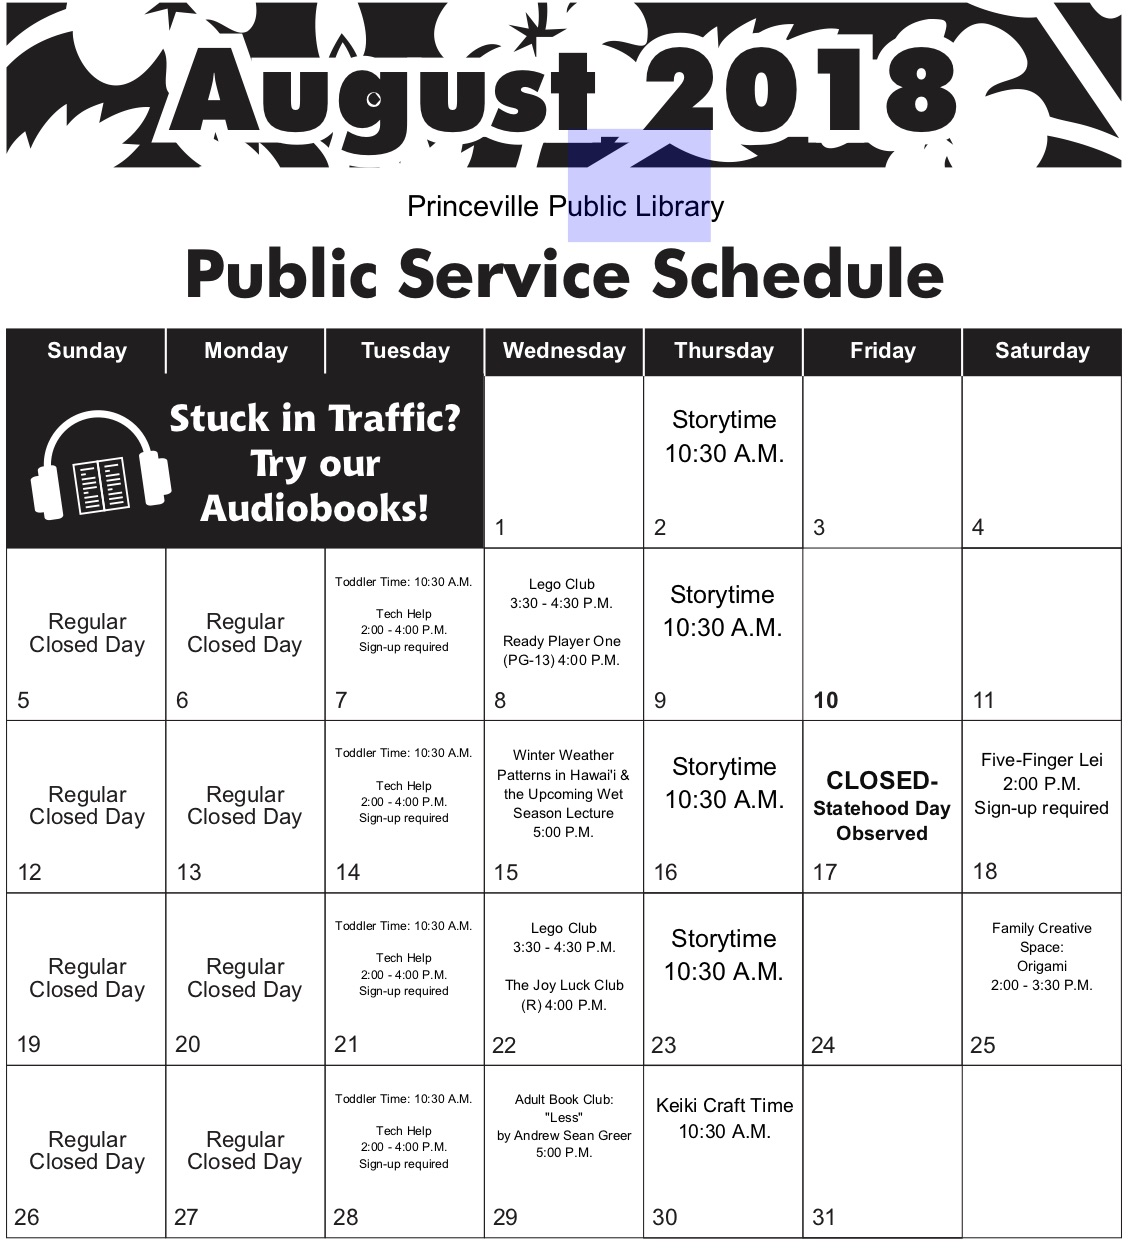 Library Hours:                                                                                             Closed Holidays: Tuesday 9:00 A.M. - 5:00 P.M.                                                       Friday, August 17: Statehood Day Day Observed Wednesday 12:00 P.M. - 7:00 P.M.                                                          Thursday 9:00 A.M. - 5:00 P.M. Friday 9:00 A.M. - 5:00 P.M.                                      Saturday 9:00 A.M. - 5:00 P.M. SUNDAY/MONDAY CLOSED